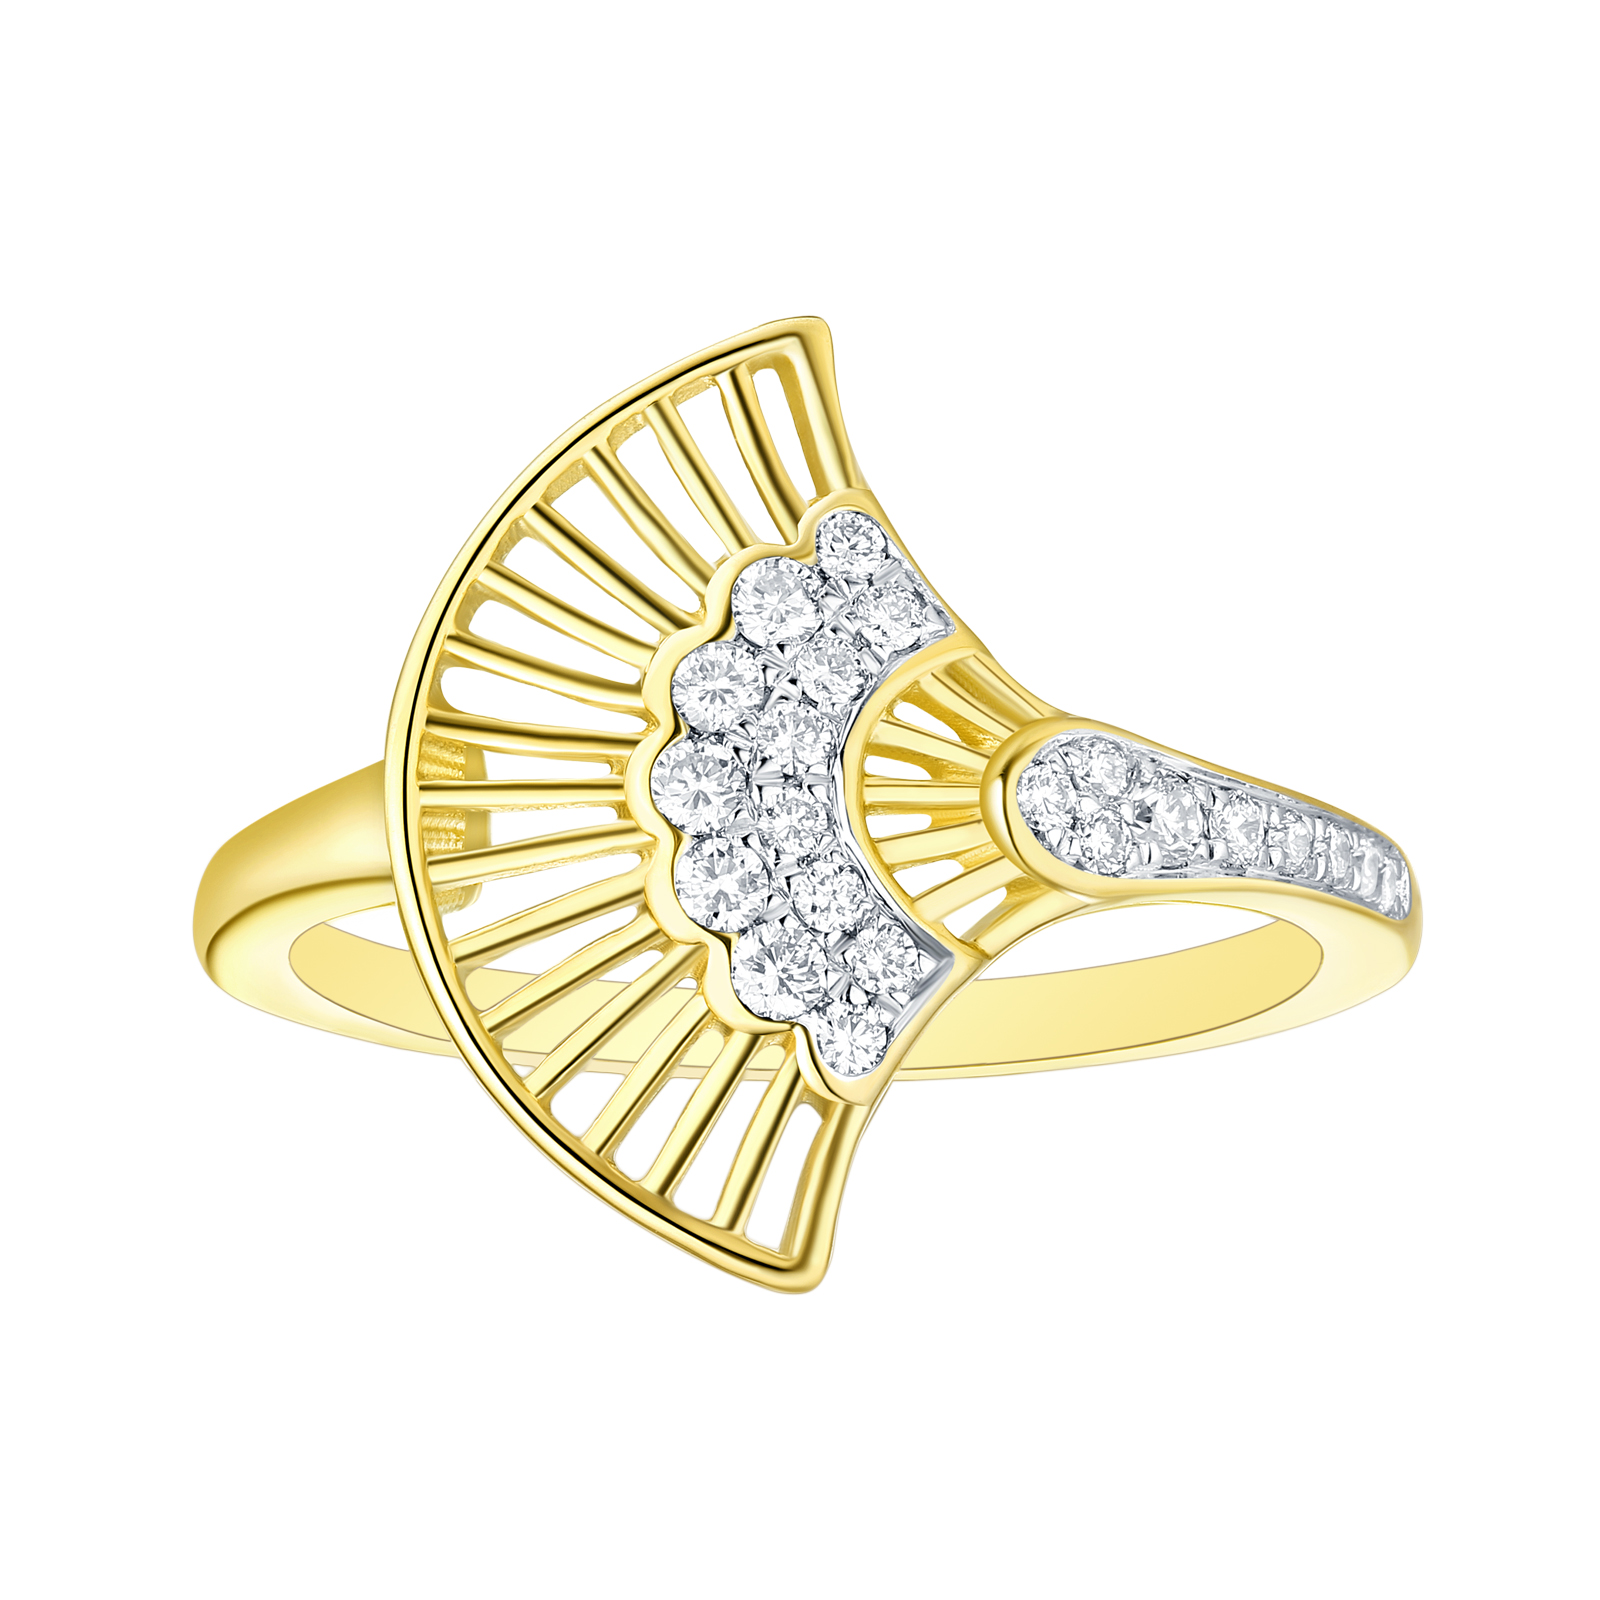 R29904WHT- 14K Yellow Gold Diamond Ring, 0.21 TCW